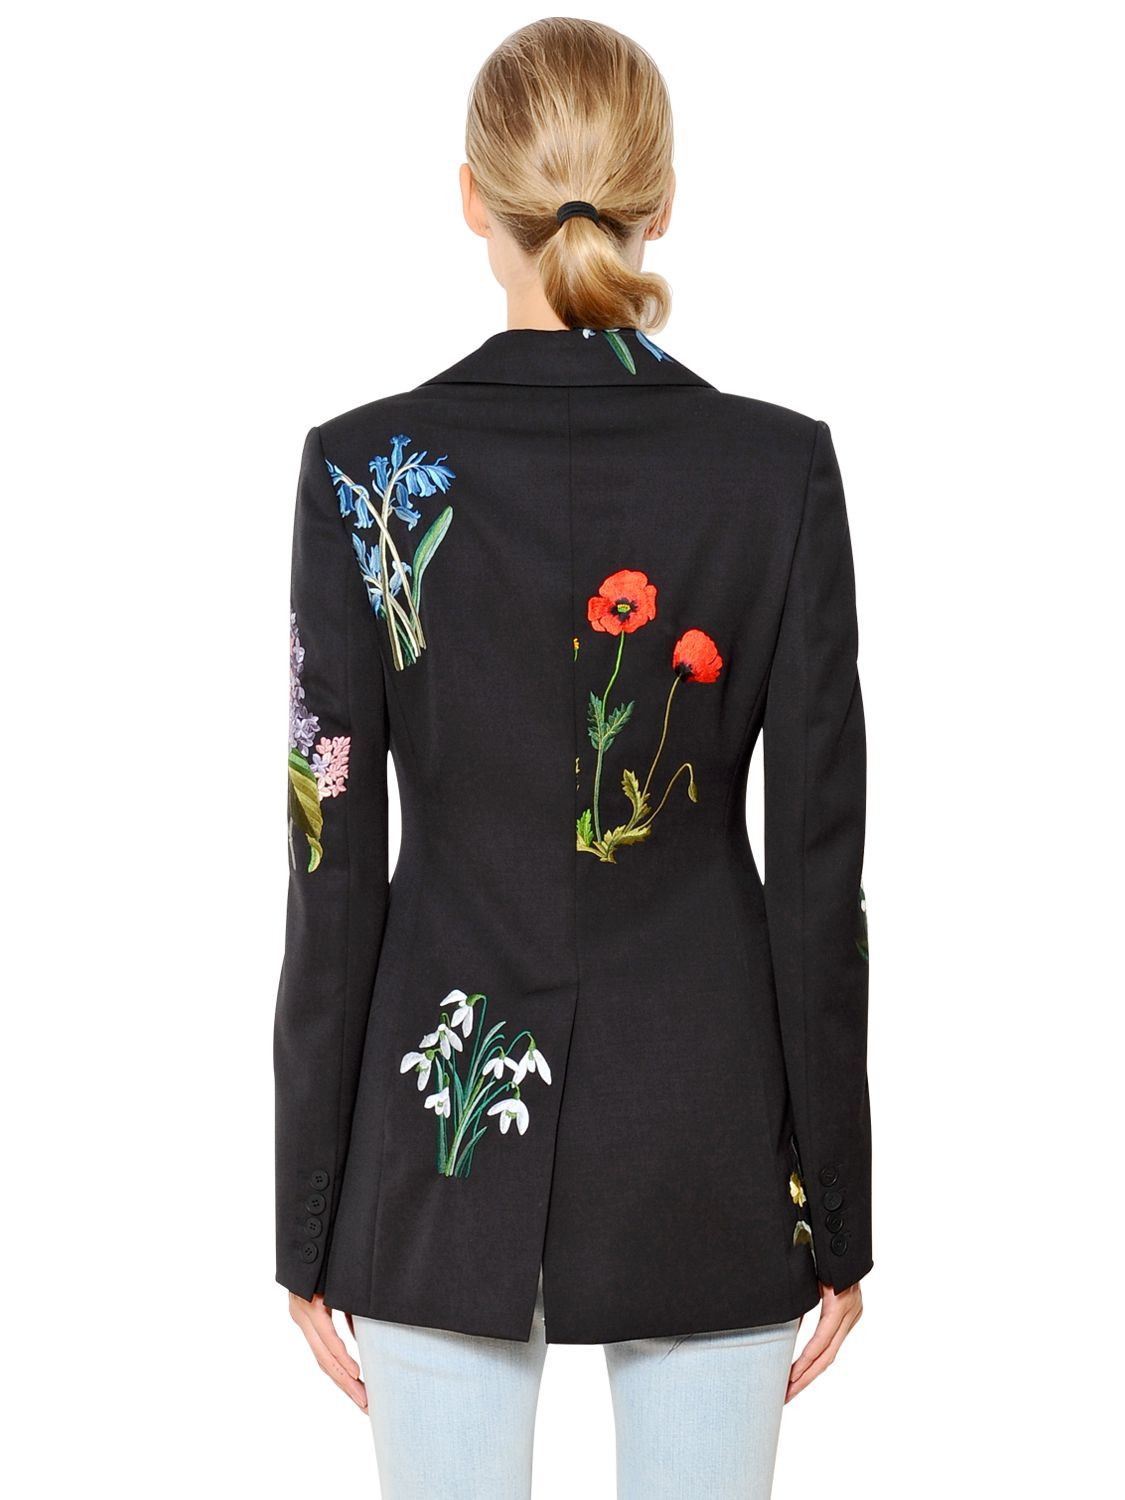 Stella mccartney floral embroidered wool tuxedo jacket in